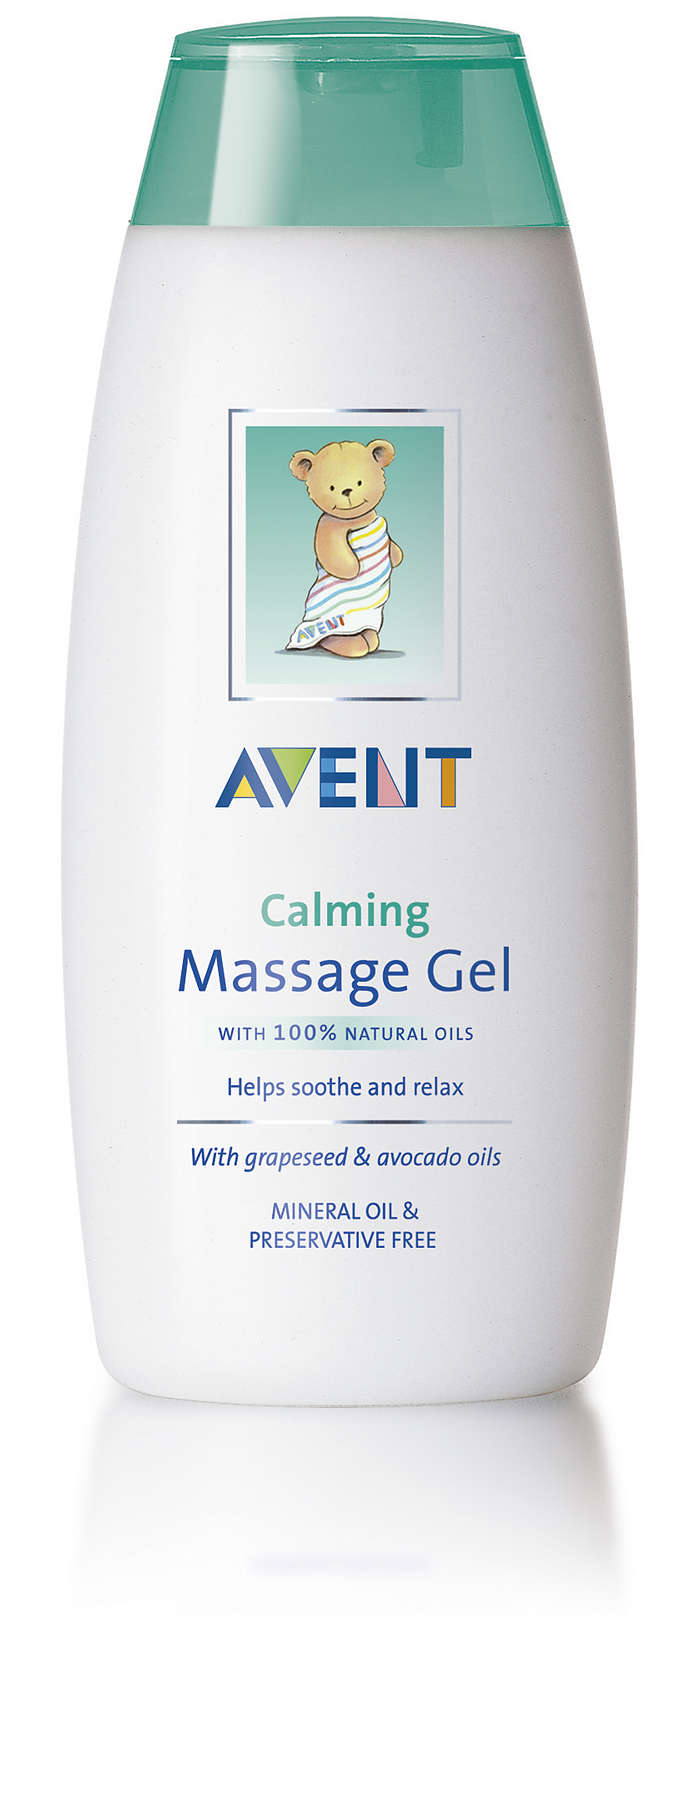 Calms, moisturises, helps soothe to sleep